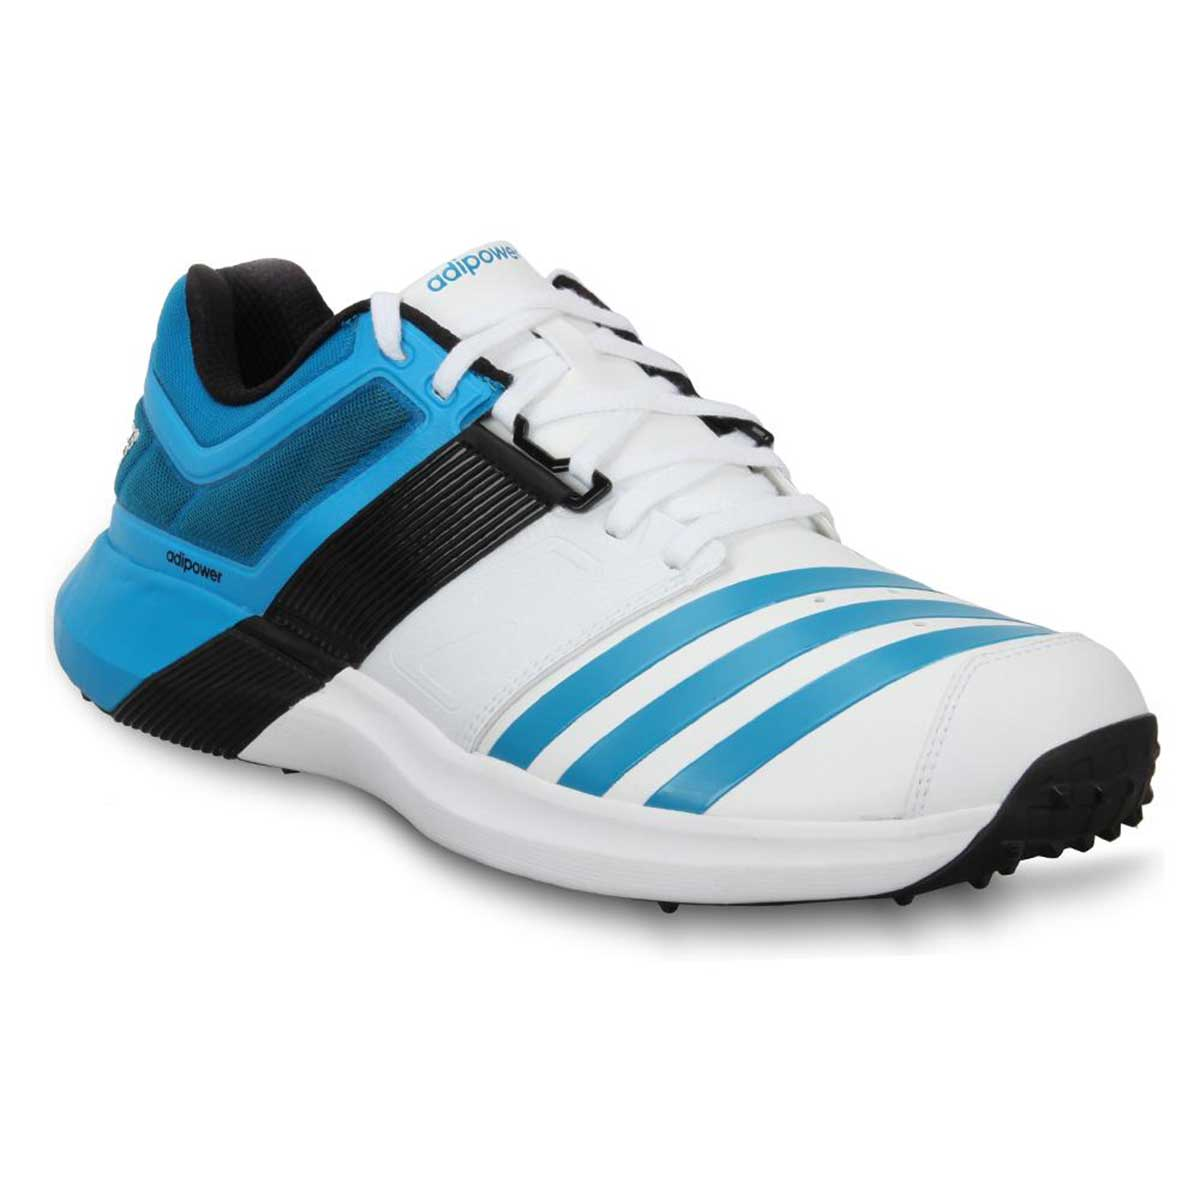 adidas adipower cricket shoes